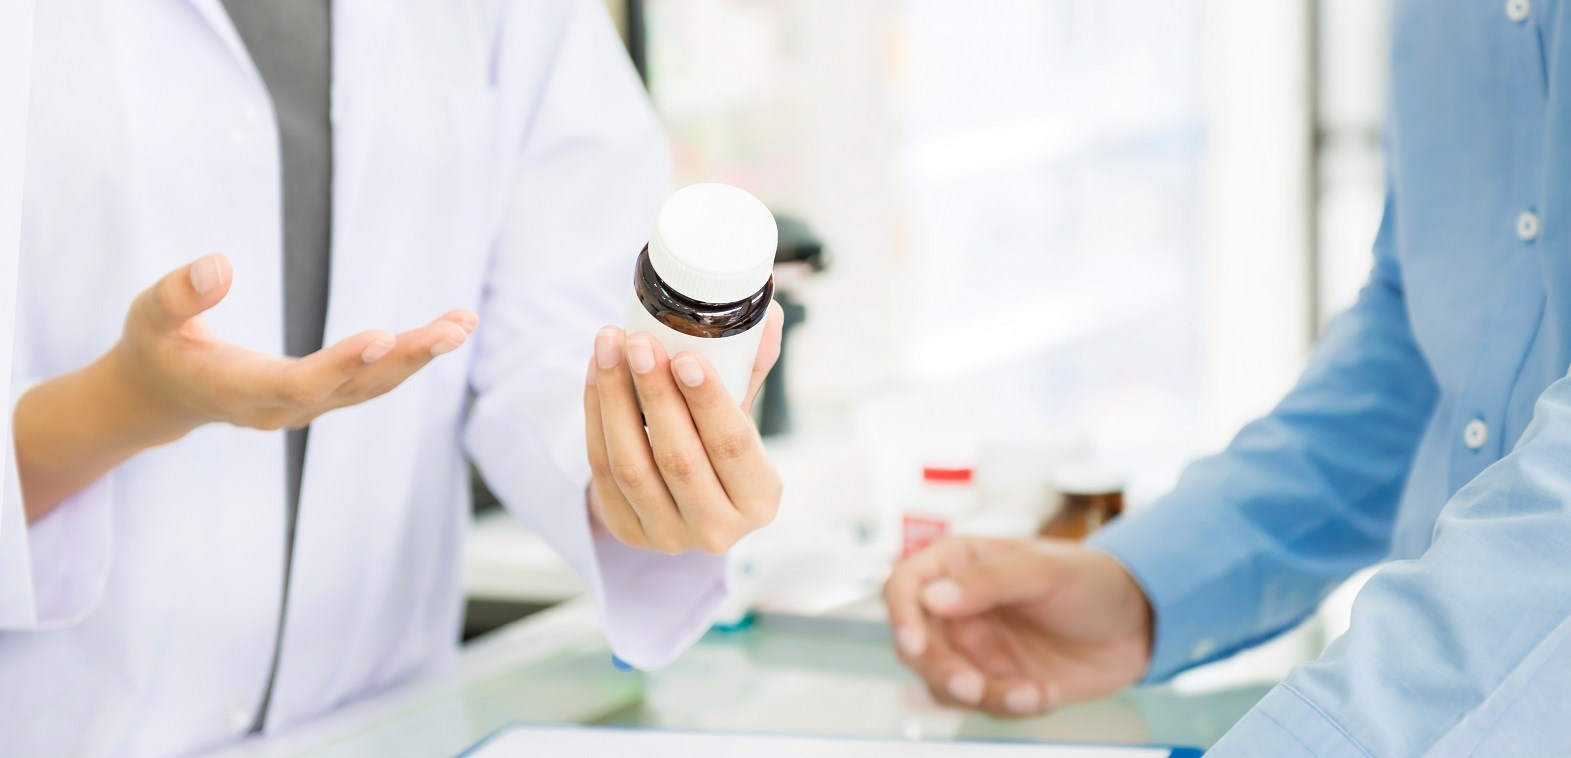 Researchers hypothesized that managing HIV medications utilizing pharmacist-led protocols would result in increased patient satisfaction.